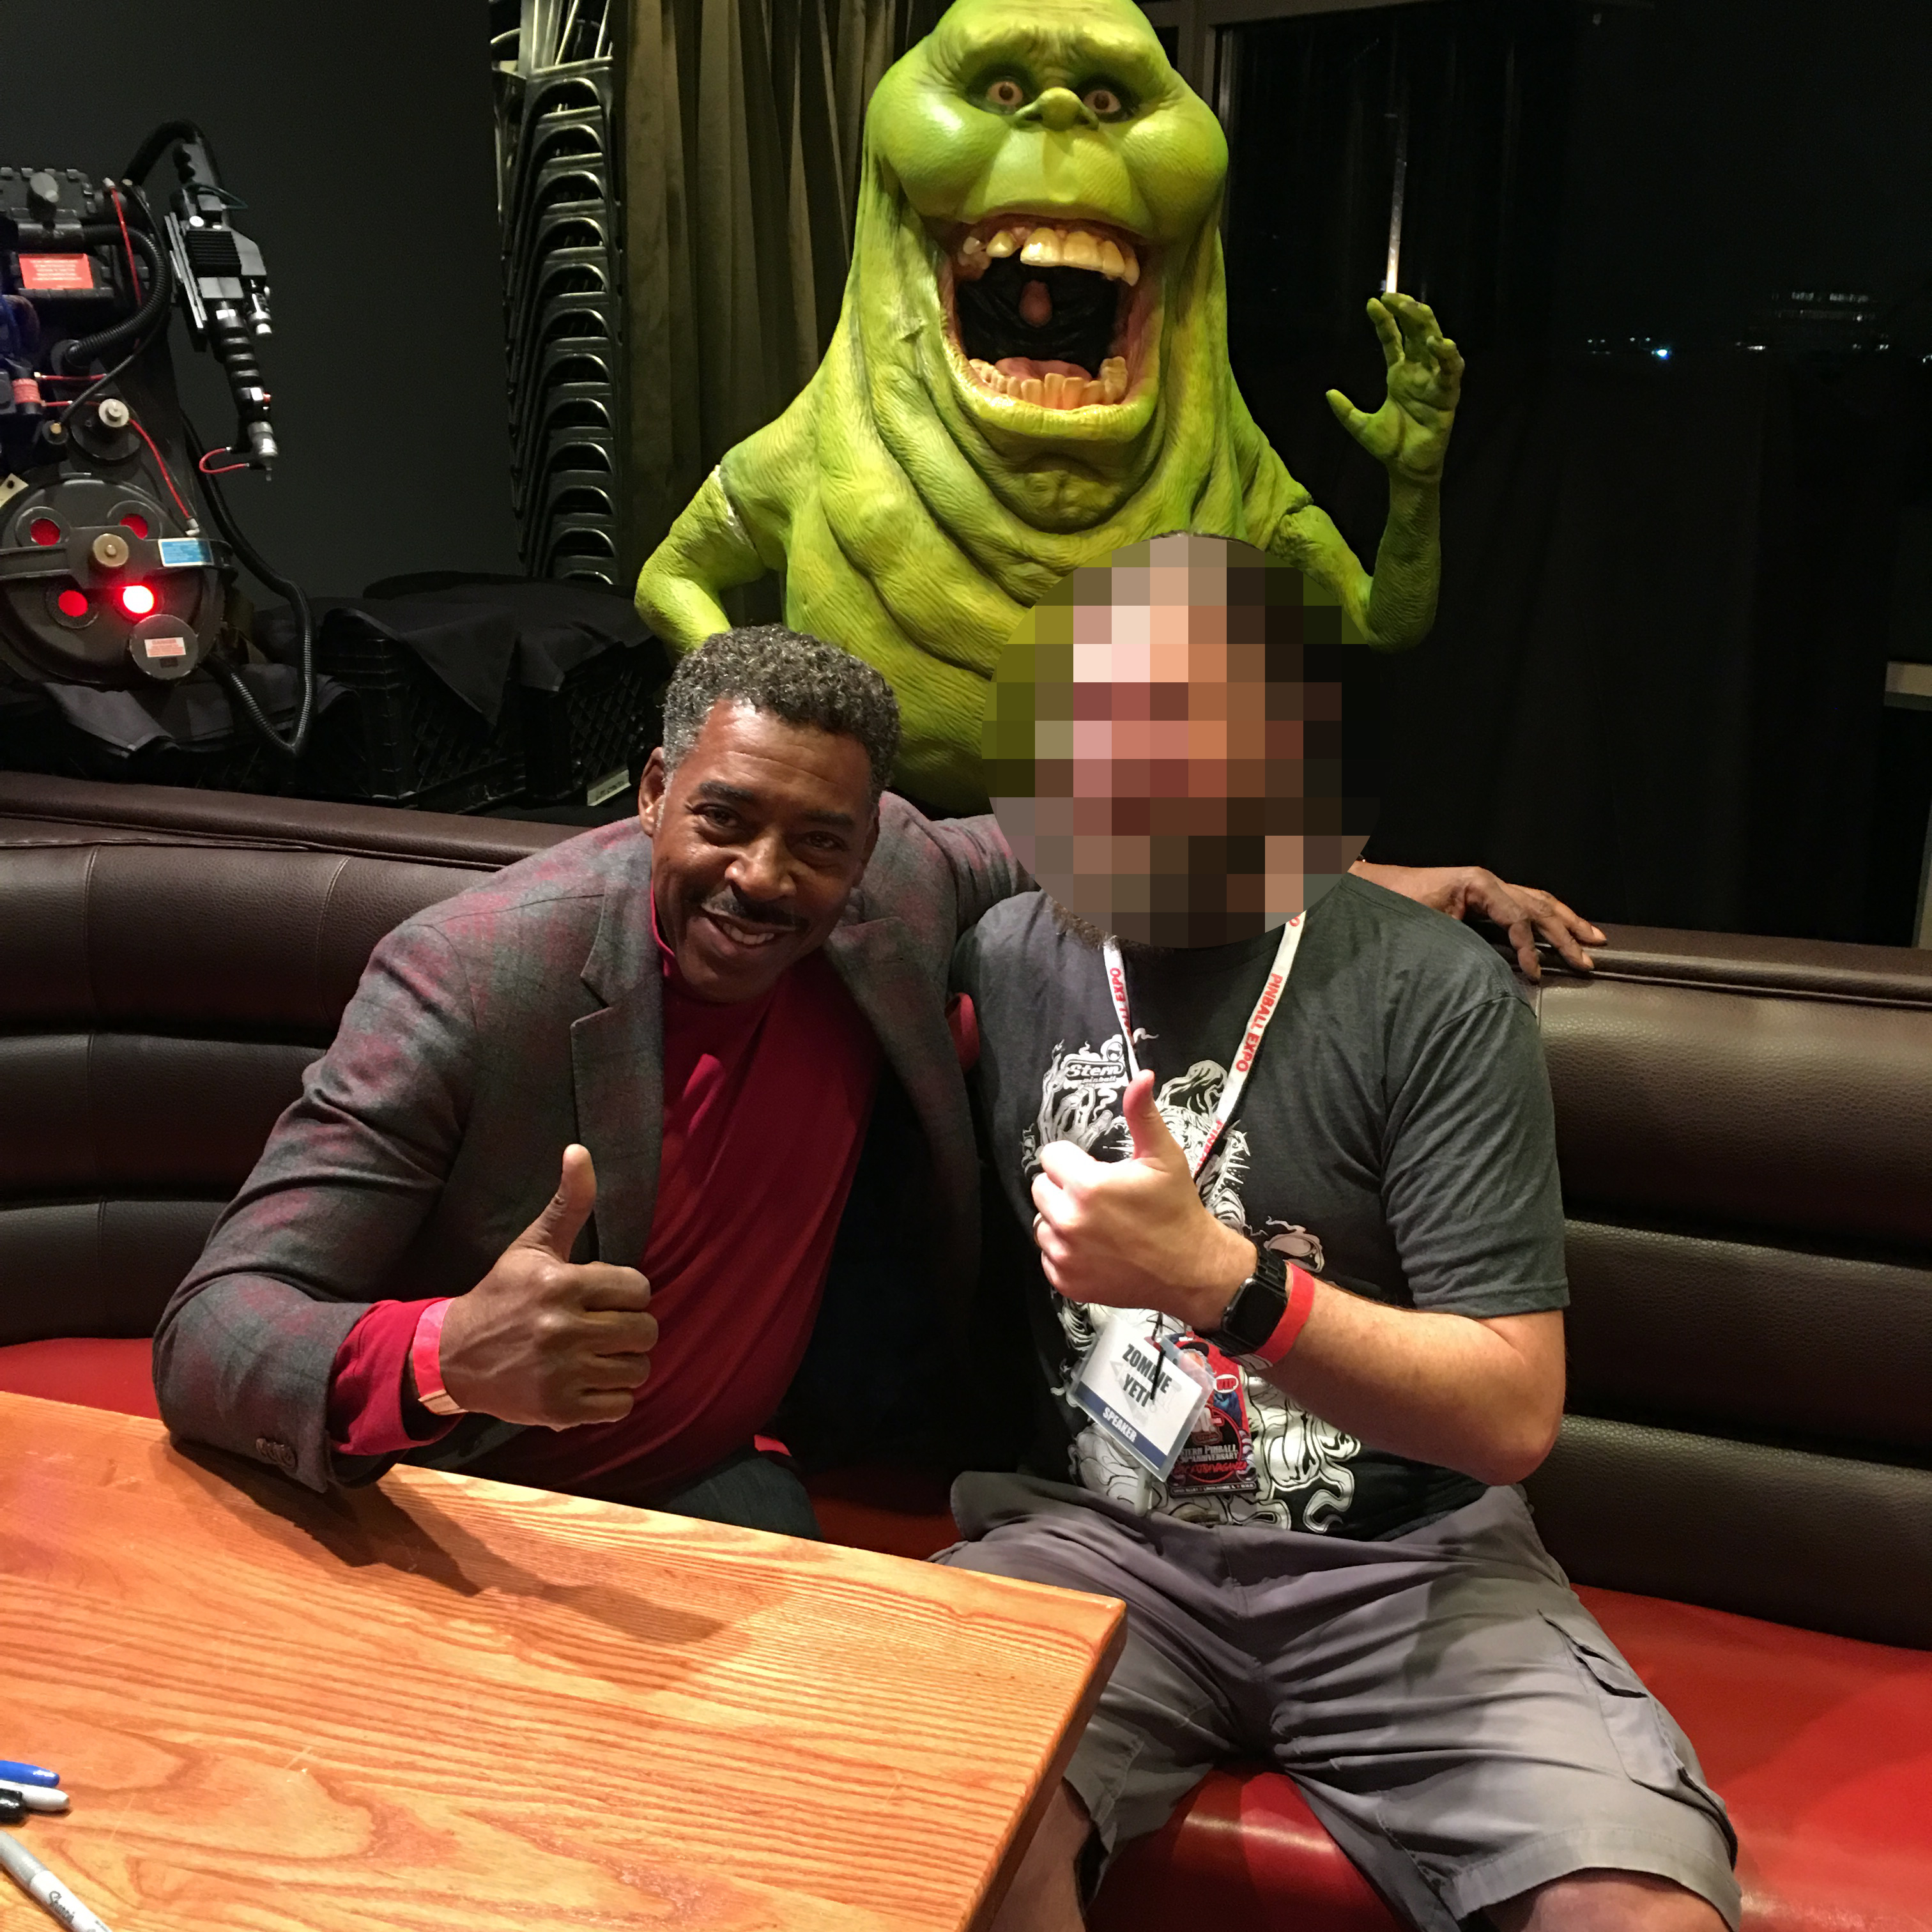 Ernie 'Winston' Hudson and Zombie Yeti signed autographs as Stern Pinball's Epic Party